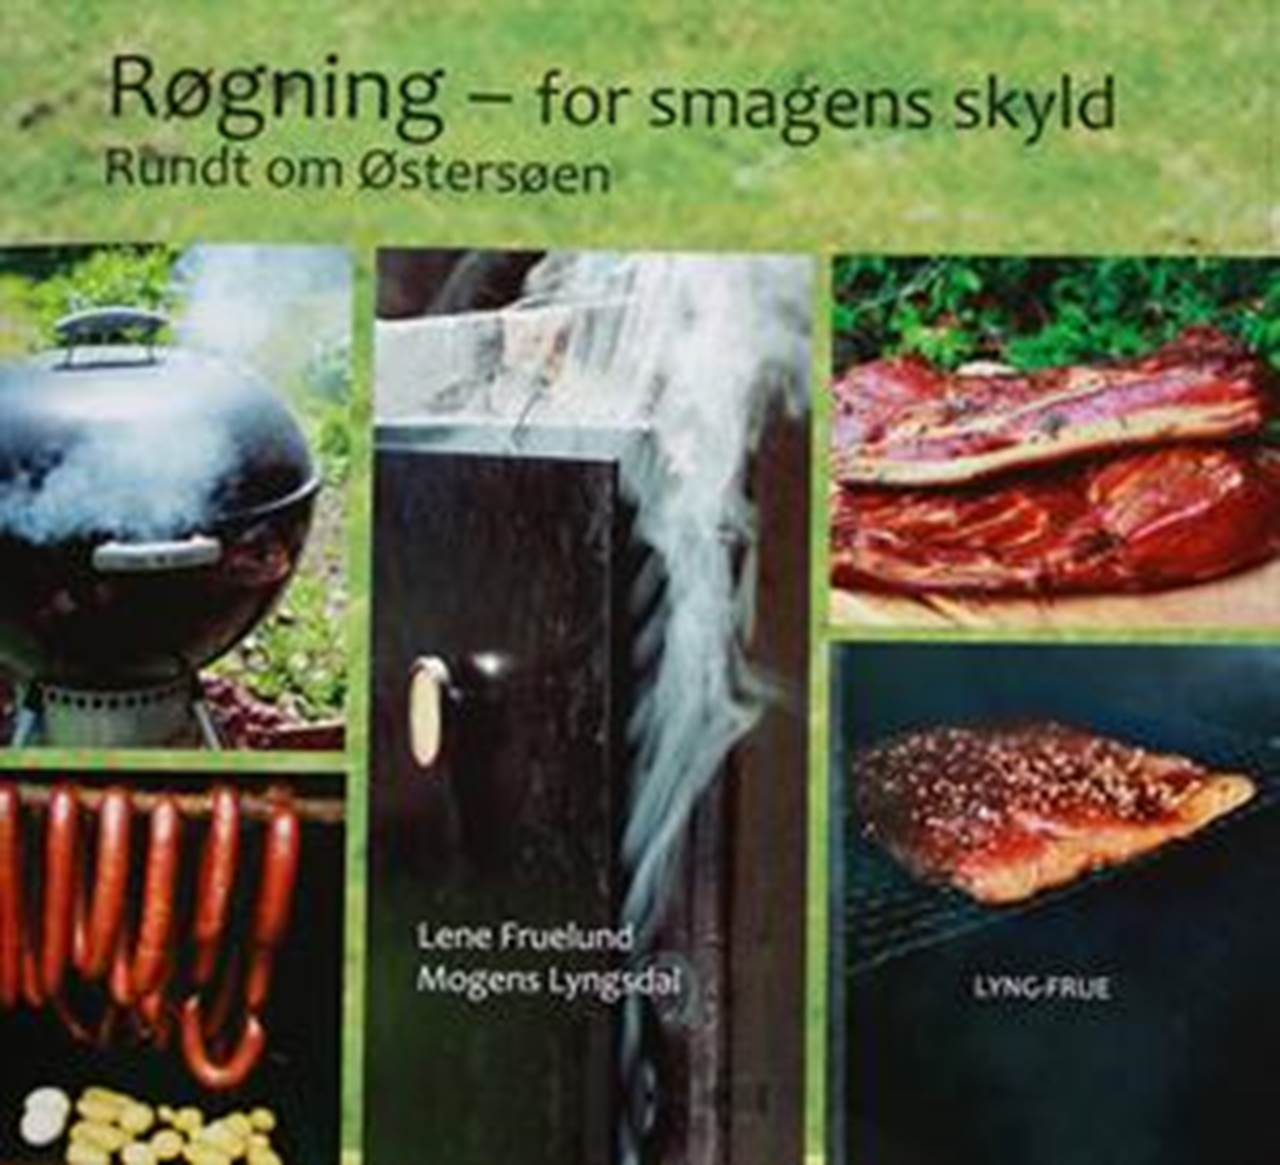 Røgning for smagens skyld